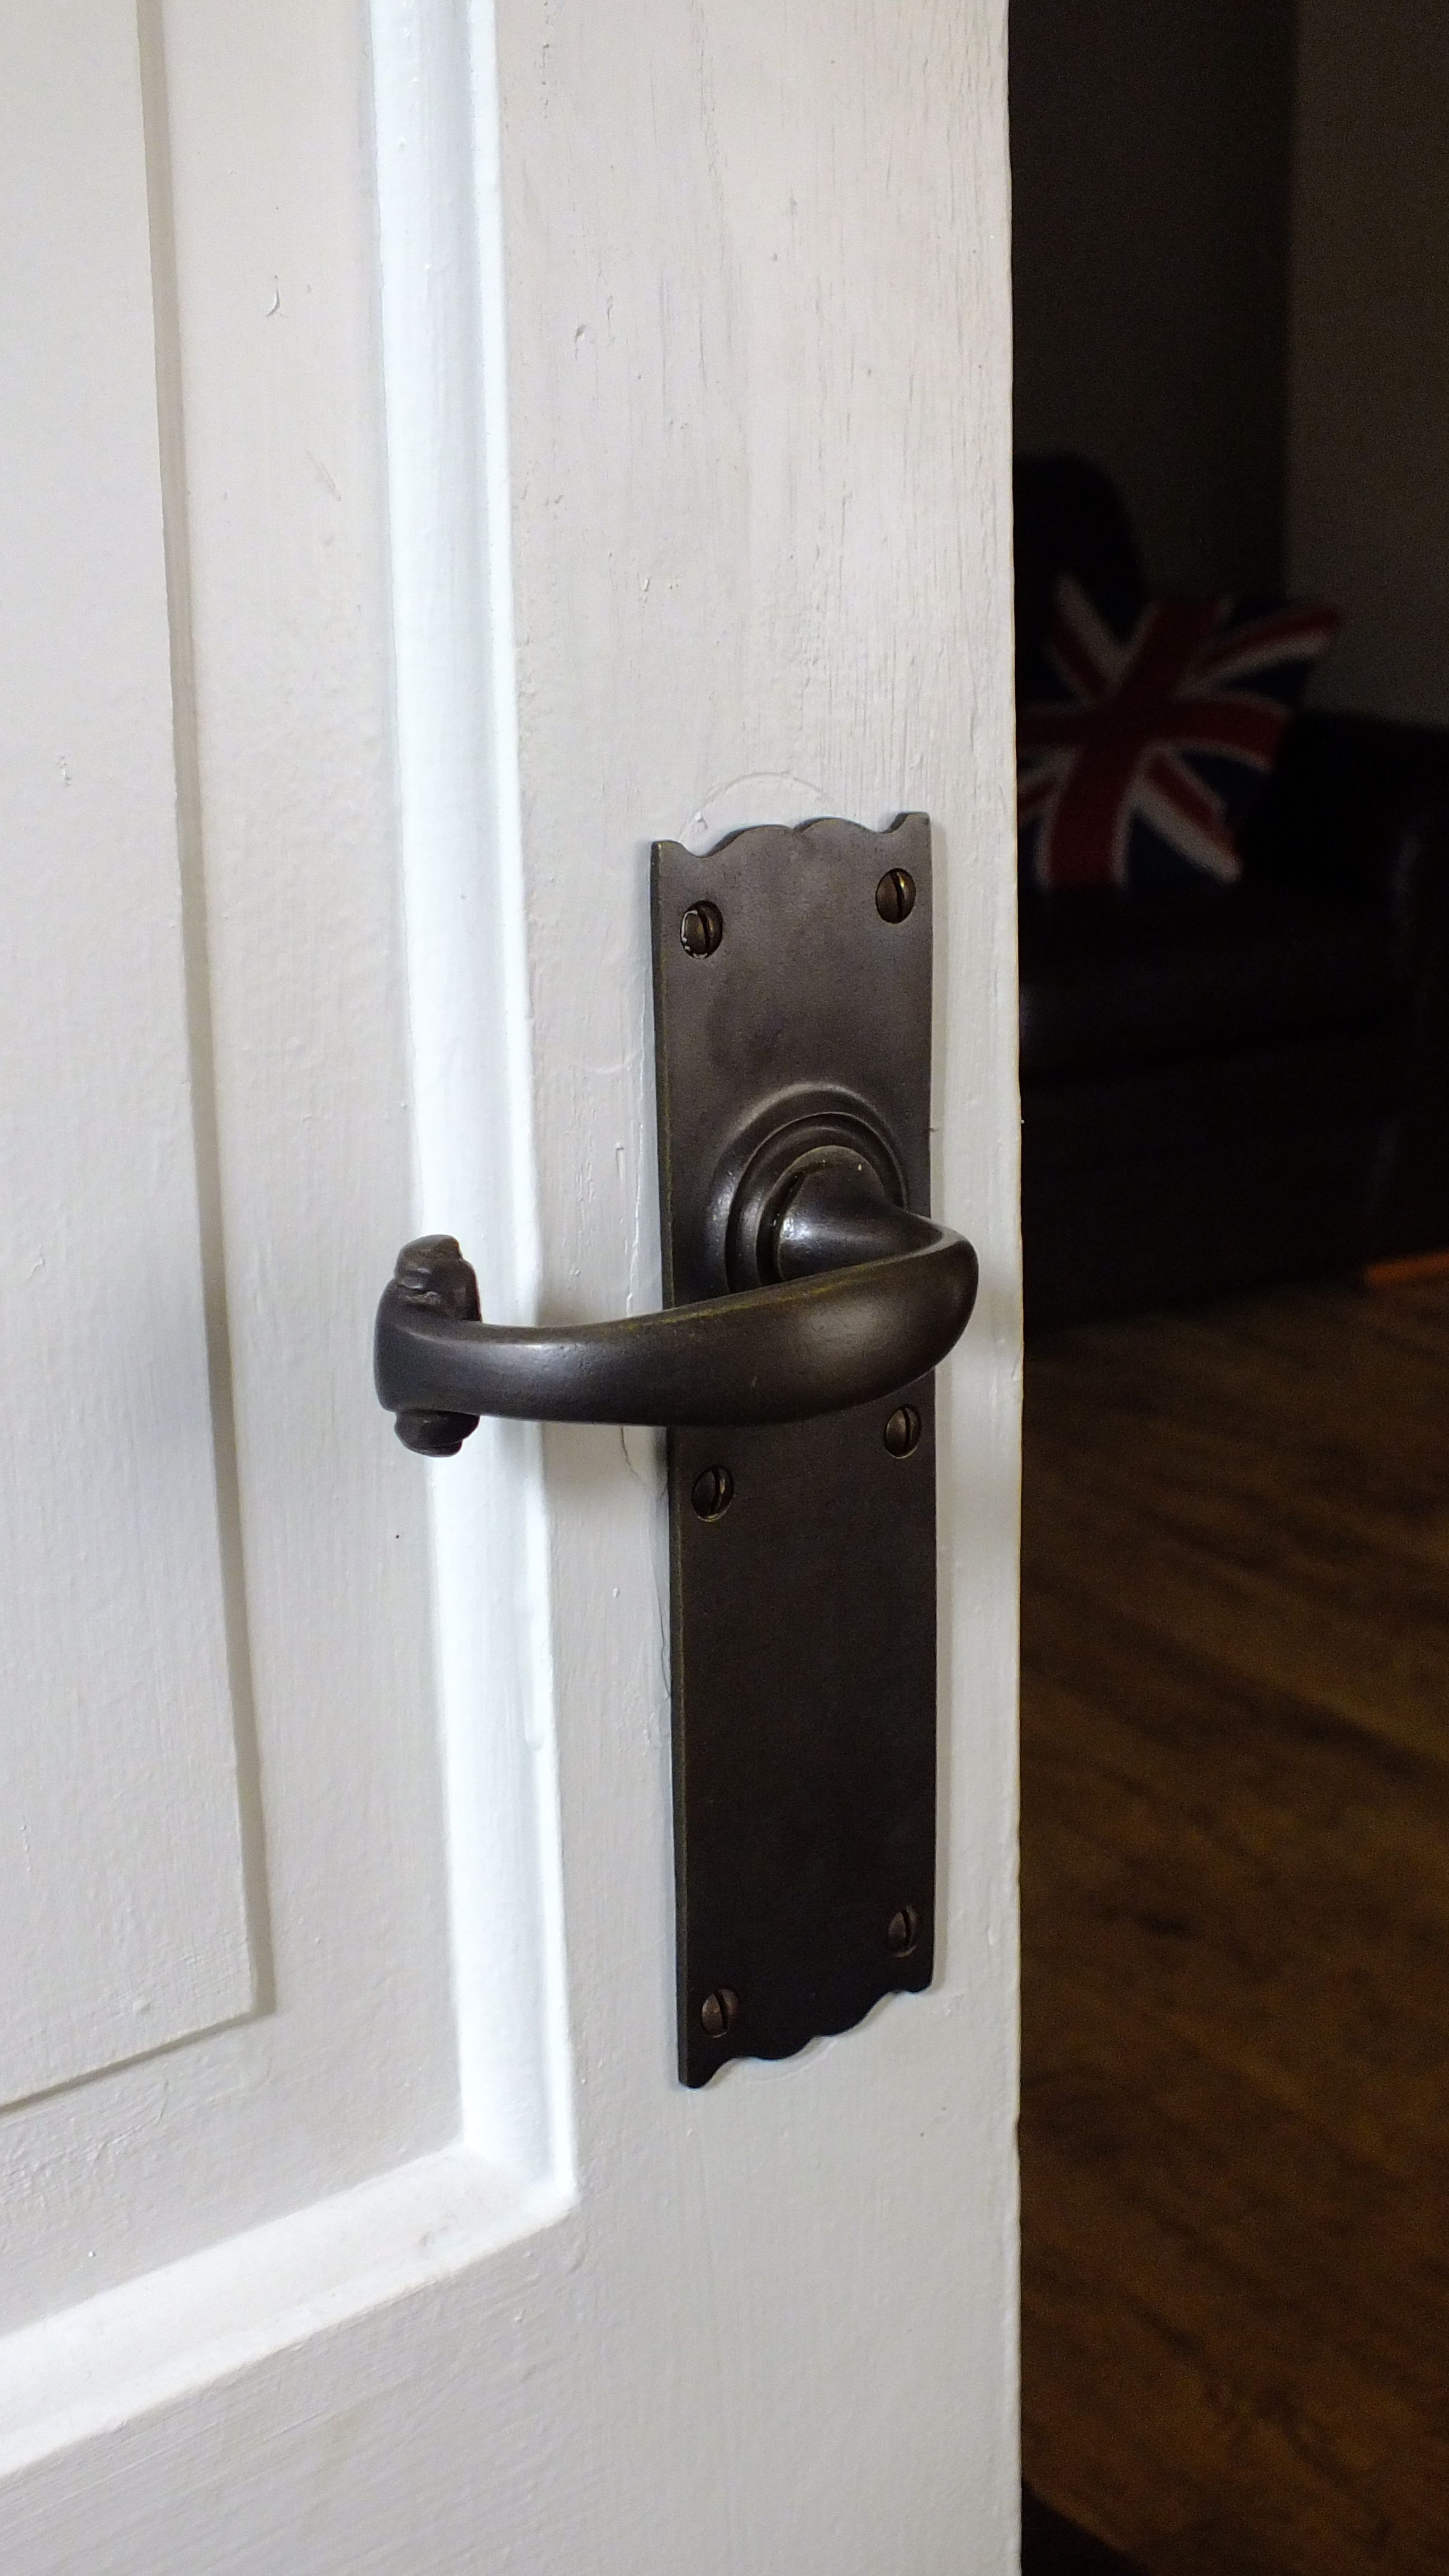 A 1920 S Style Door Handle In Distressed Antique Brass A Traditionally Cast Handle Made By Hand In Willenhall Uk Th Door Handles Door Handles Vintage Doors